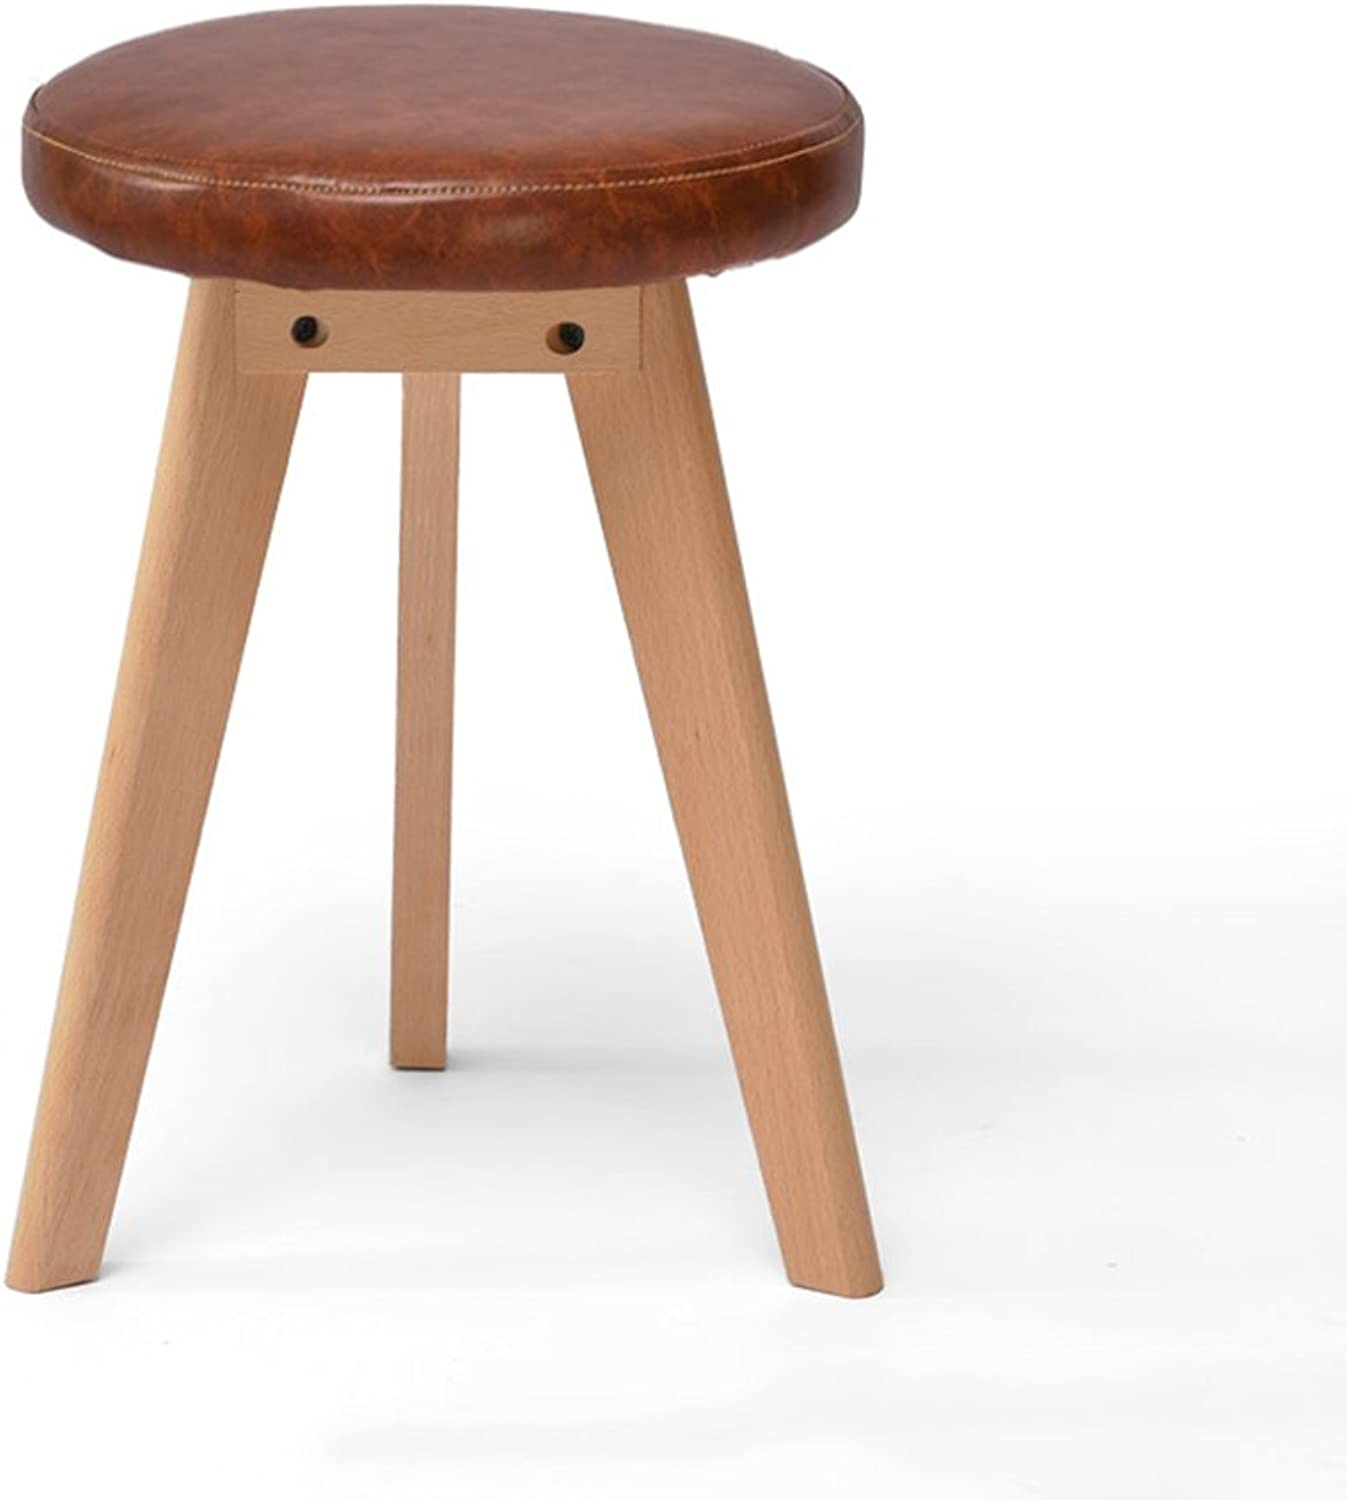 ZHIRONG Solid Wood Stool Creative Triangle Make-up Stool Round Dining Table Stool 31  31  46CM (color   Brown)